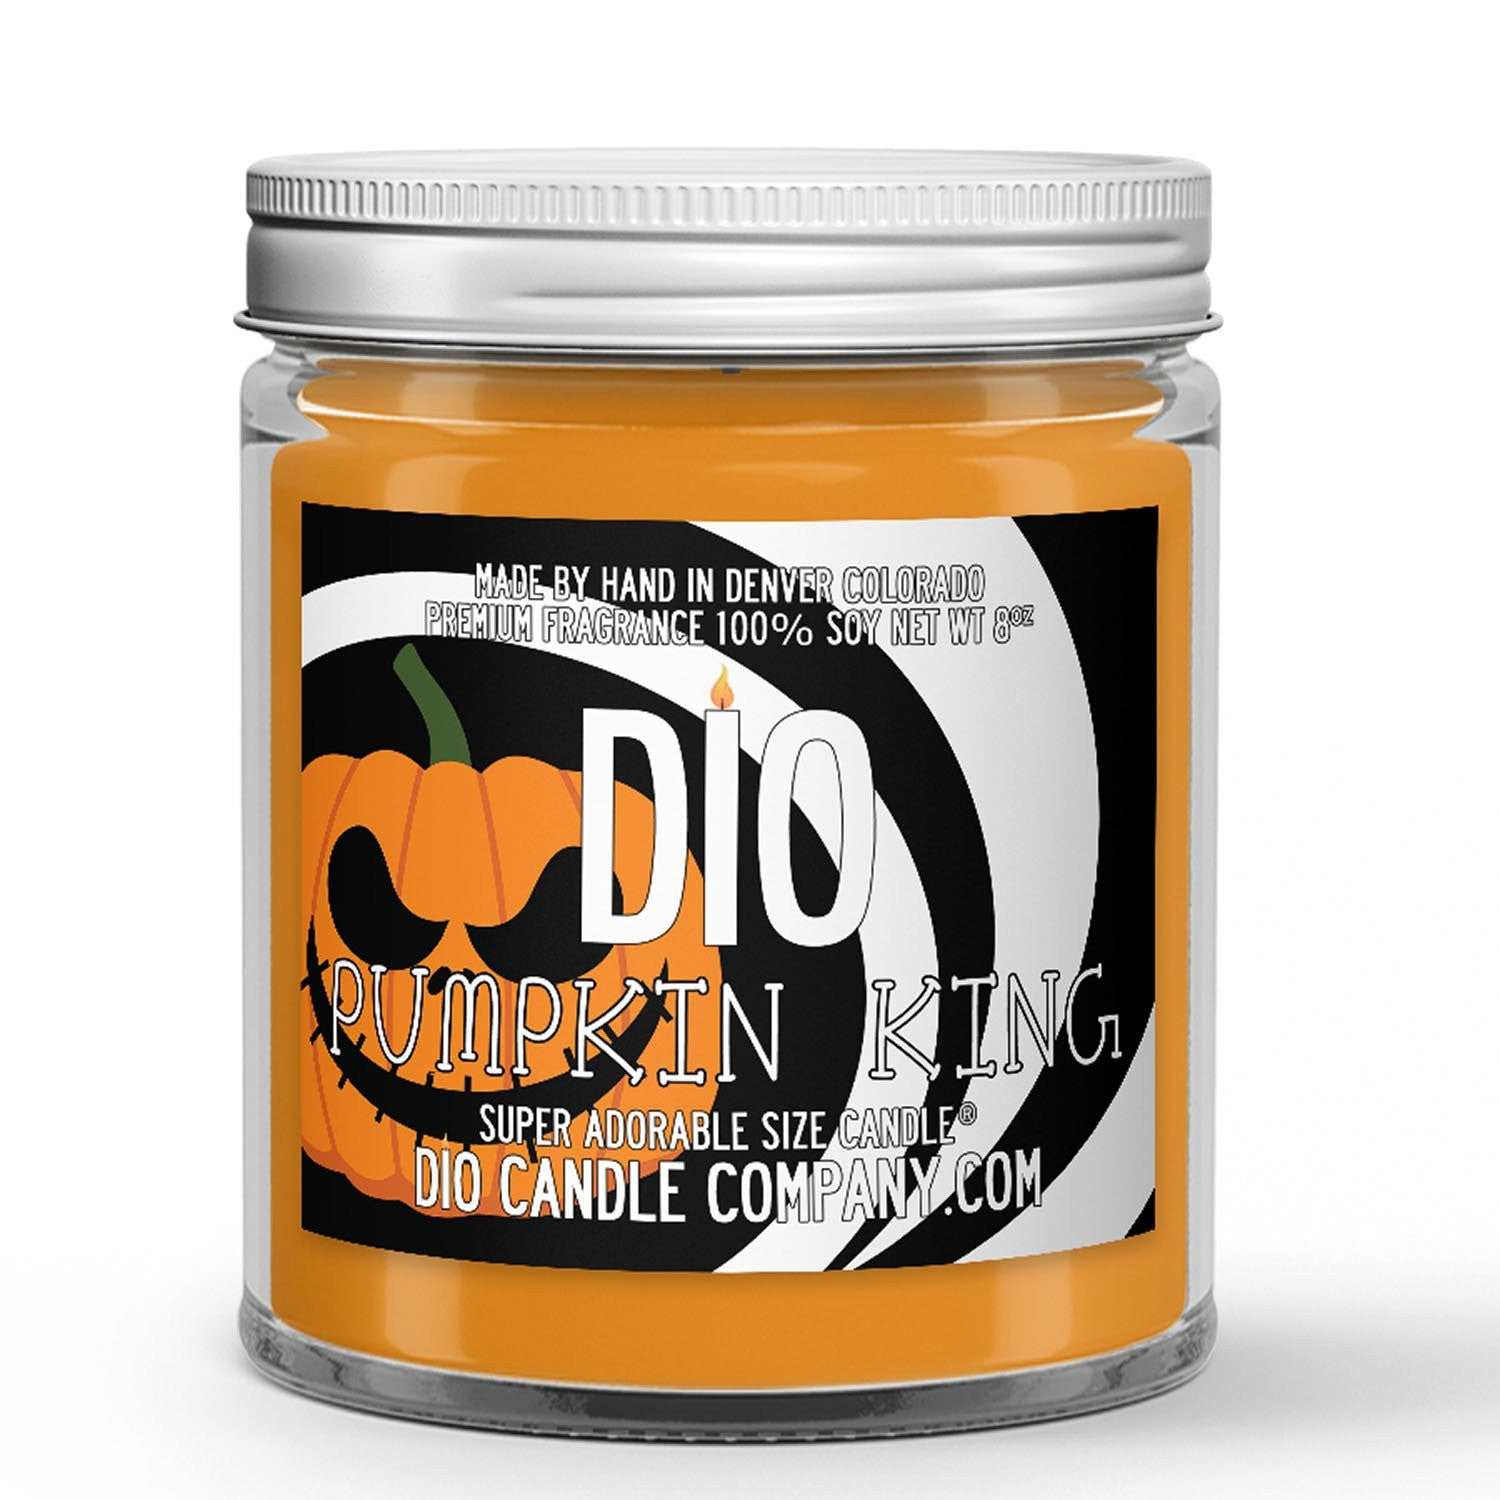 Halloween Pumpkin King Candle - Men's Cologne - Woods - Pumpkin - 8oz Super Adorable Size Candle® - Dio Candle Company